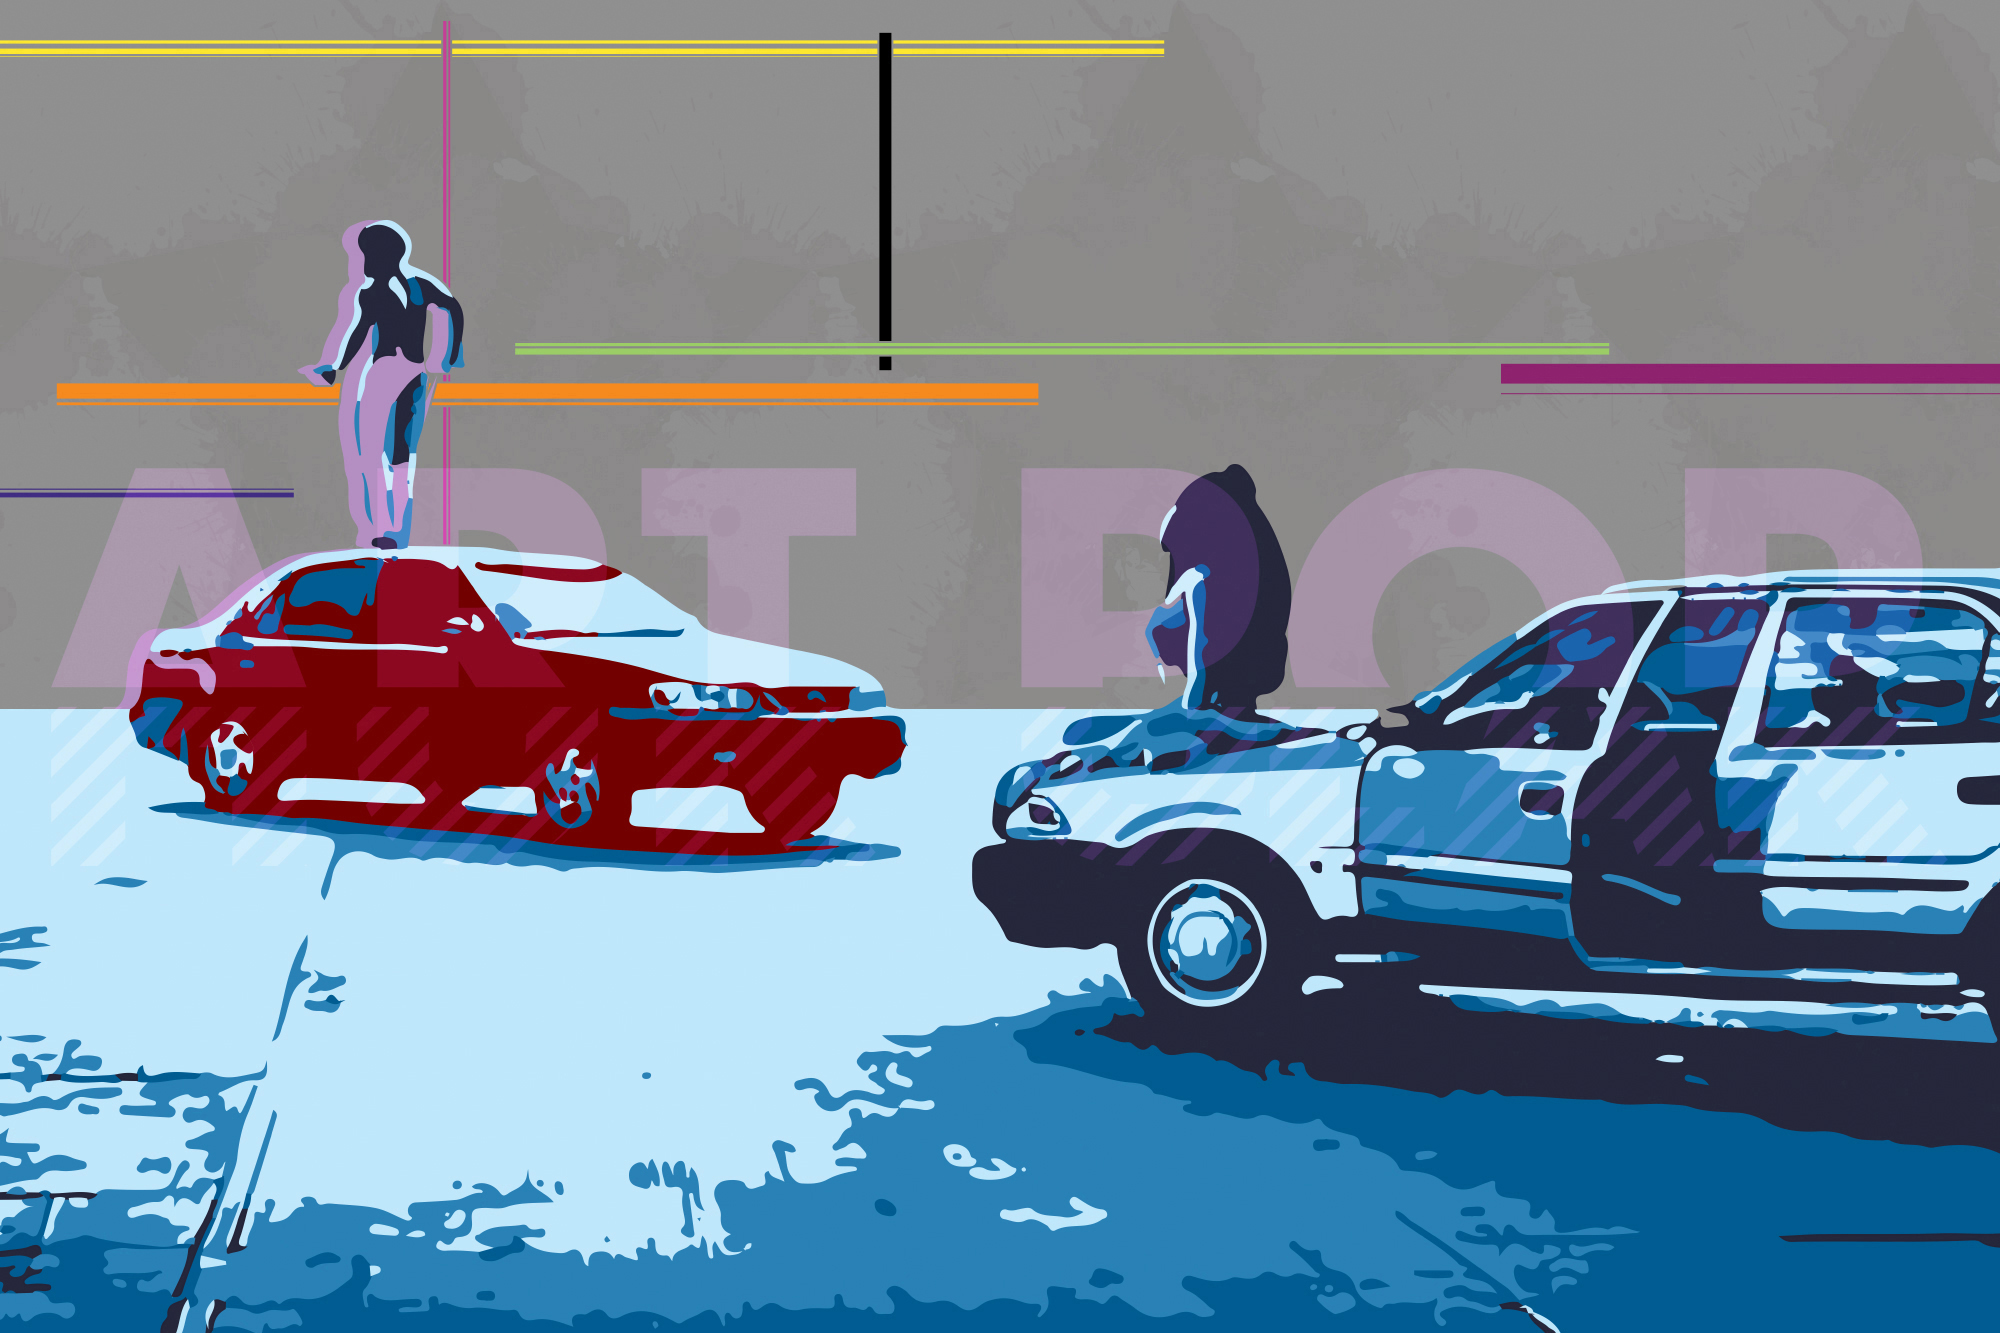 This Is America - Inspired by Childish Gambino's song and video.Available via:Amazon | DeviantArt |Redbubble|Society6